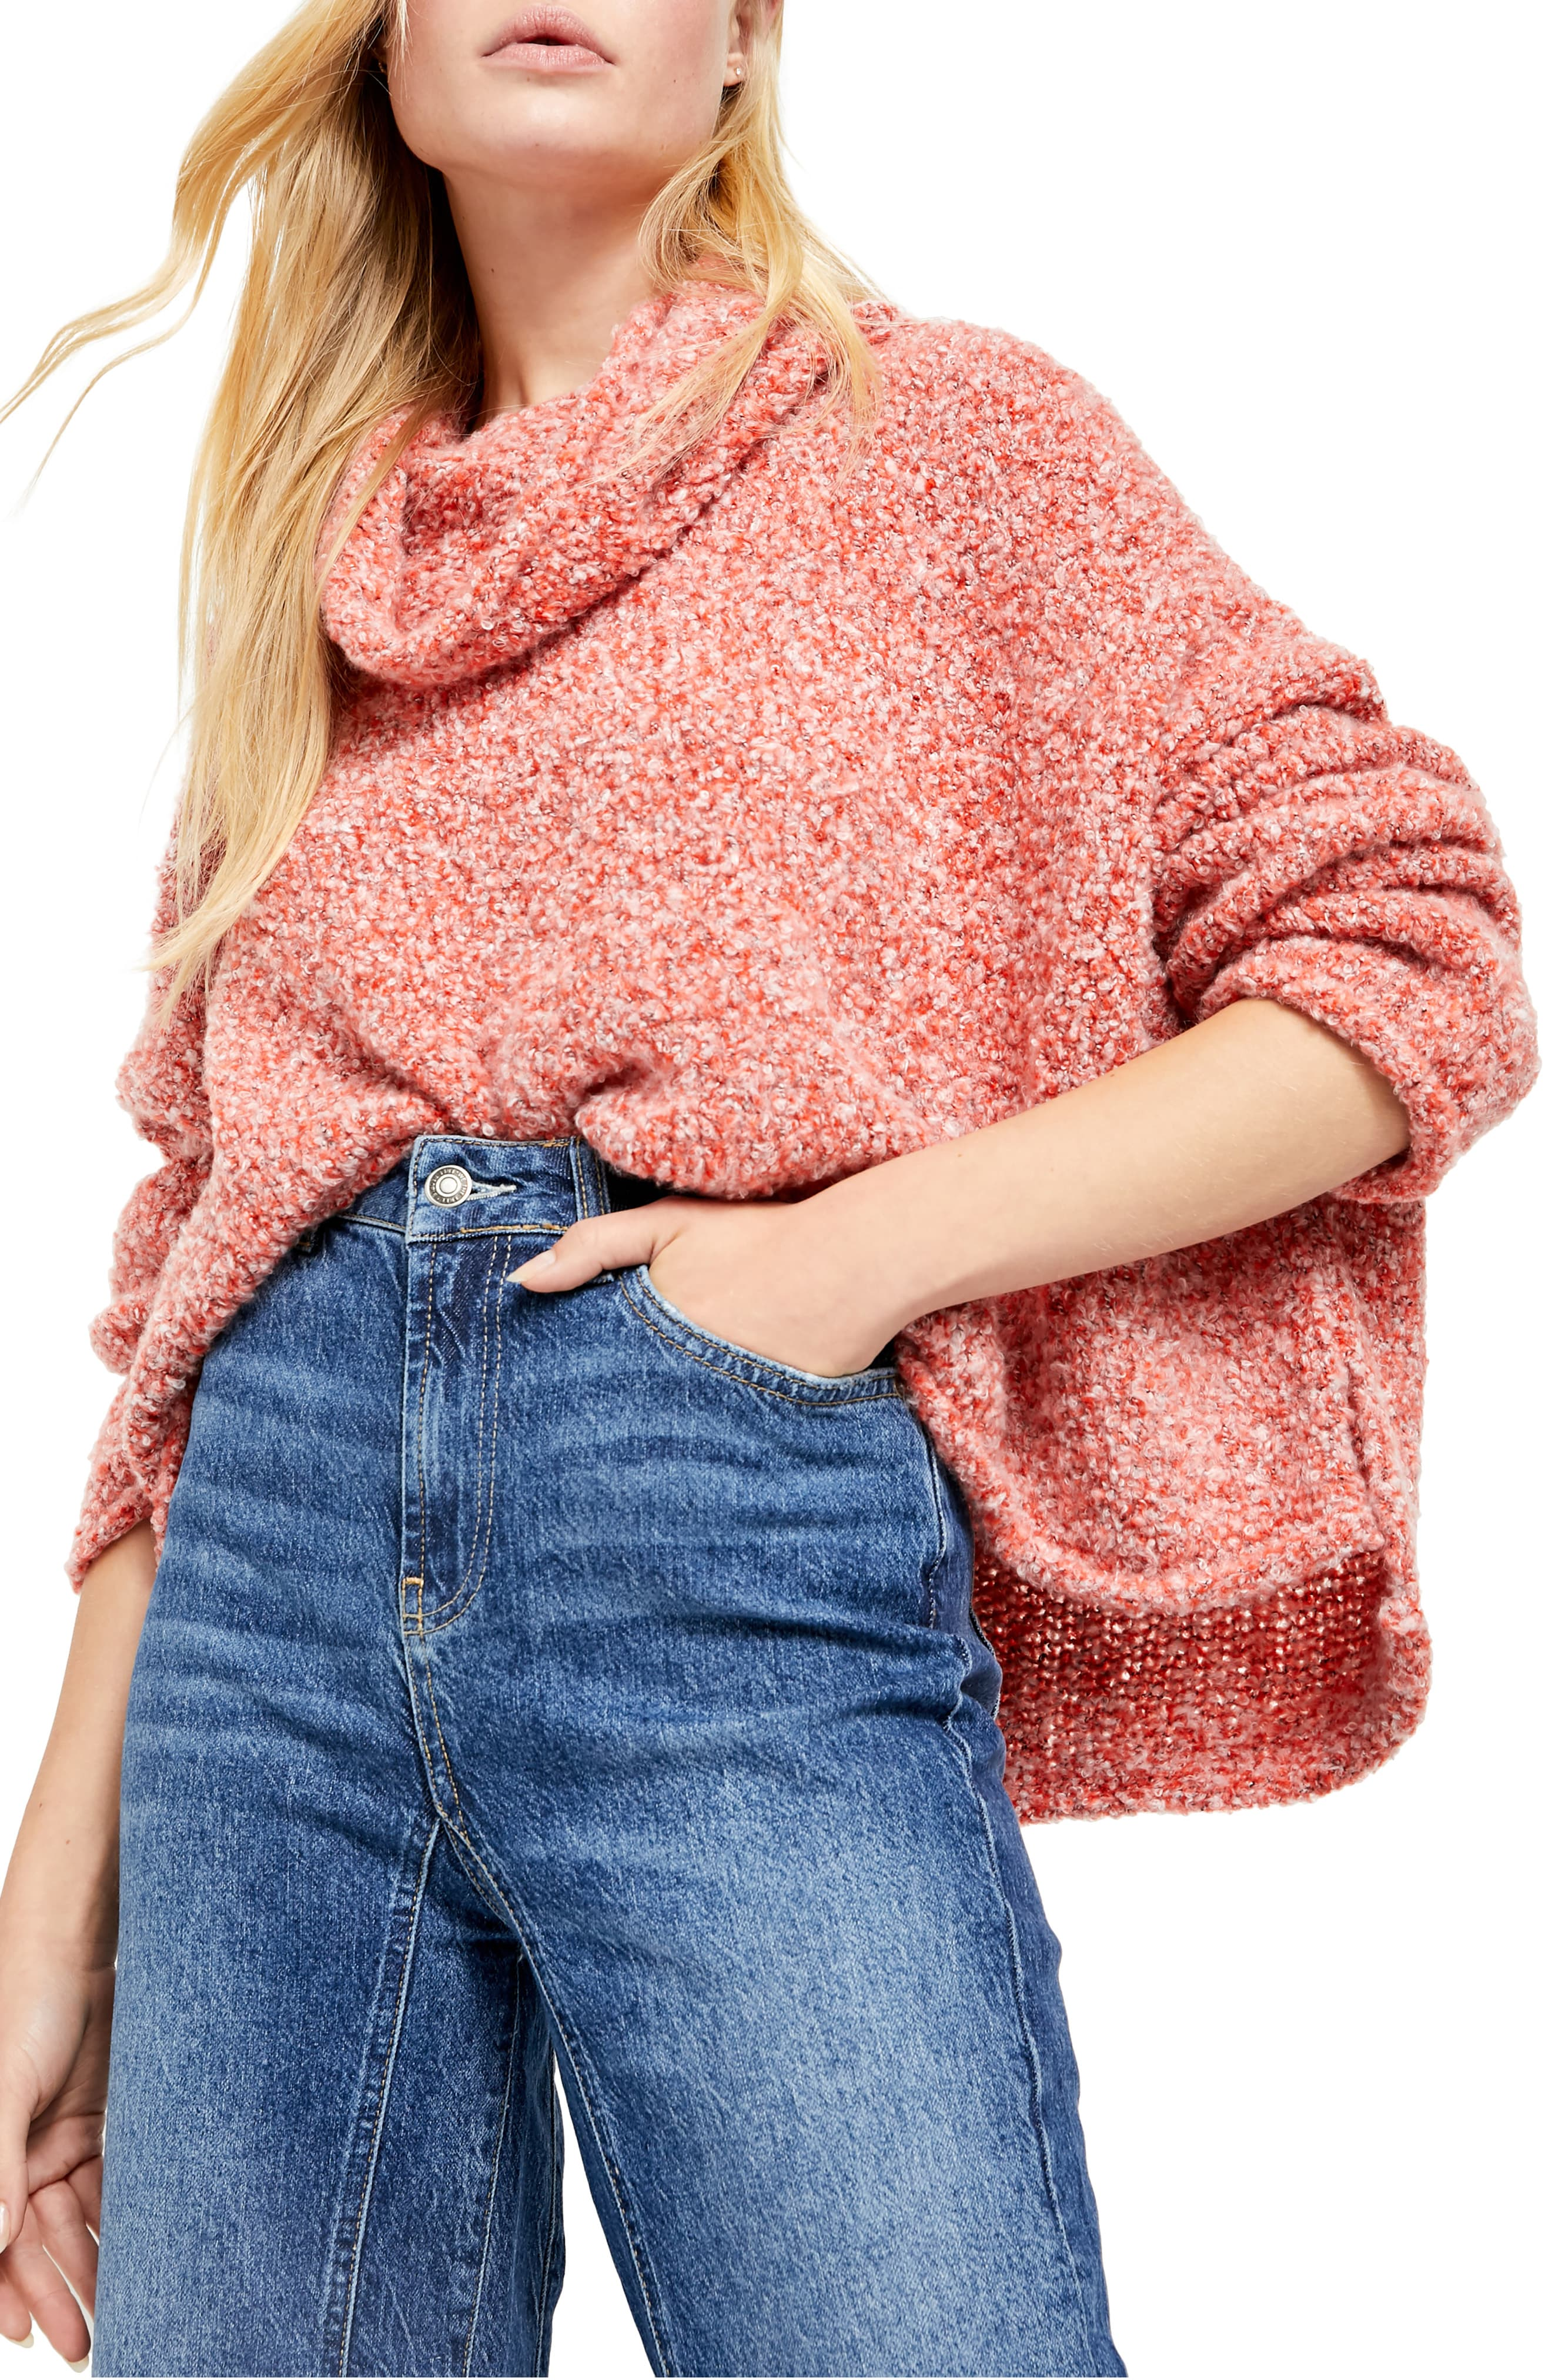 Free People BFF Cowl Neck Sweater $49.00 +fs